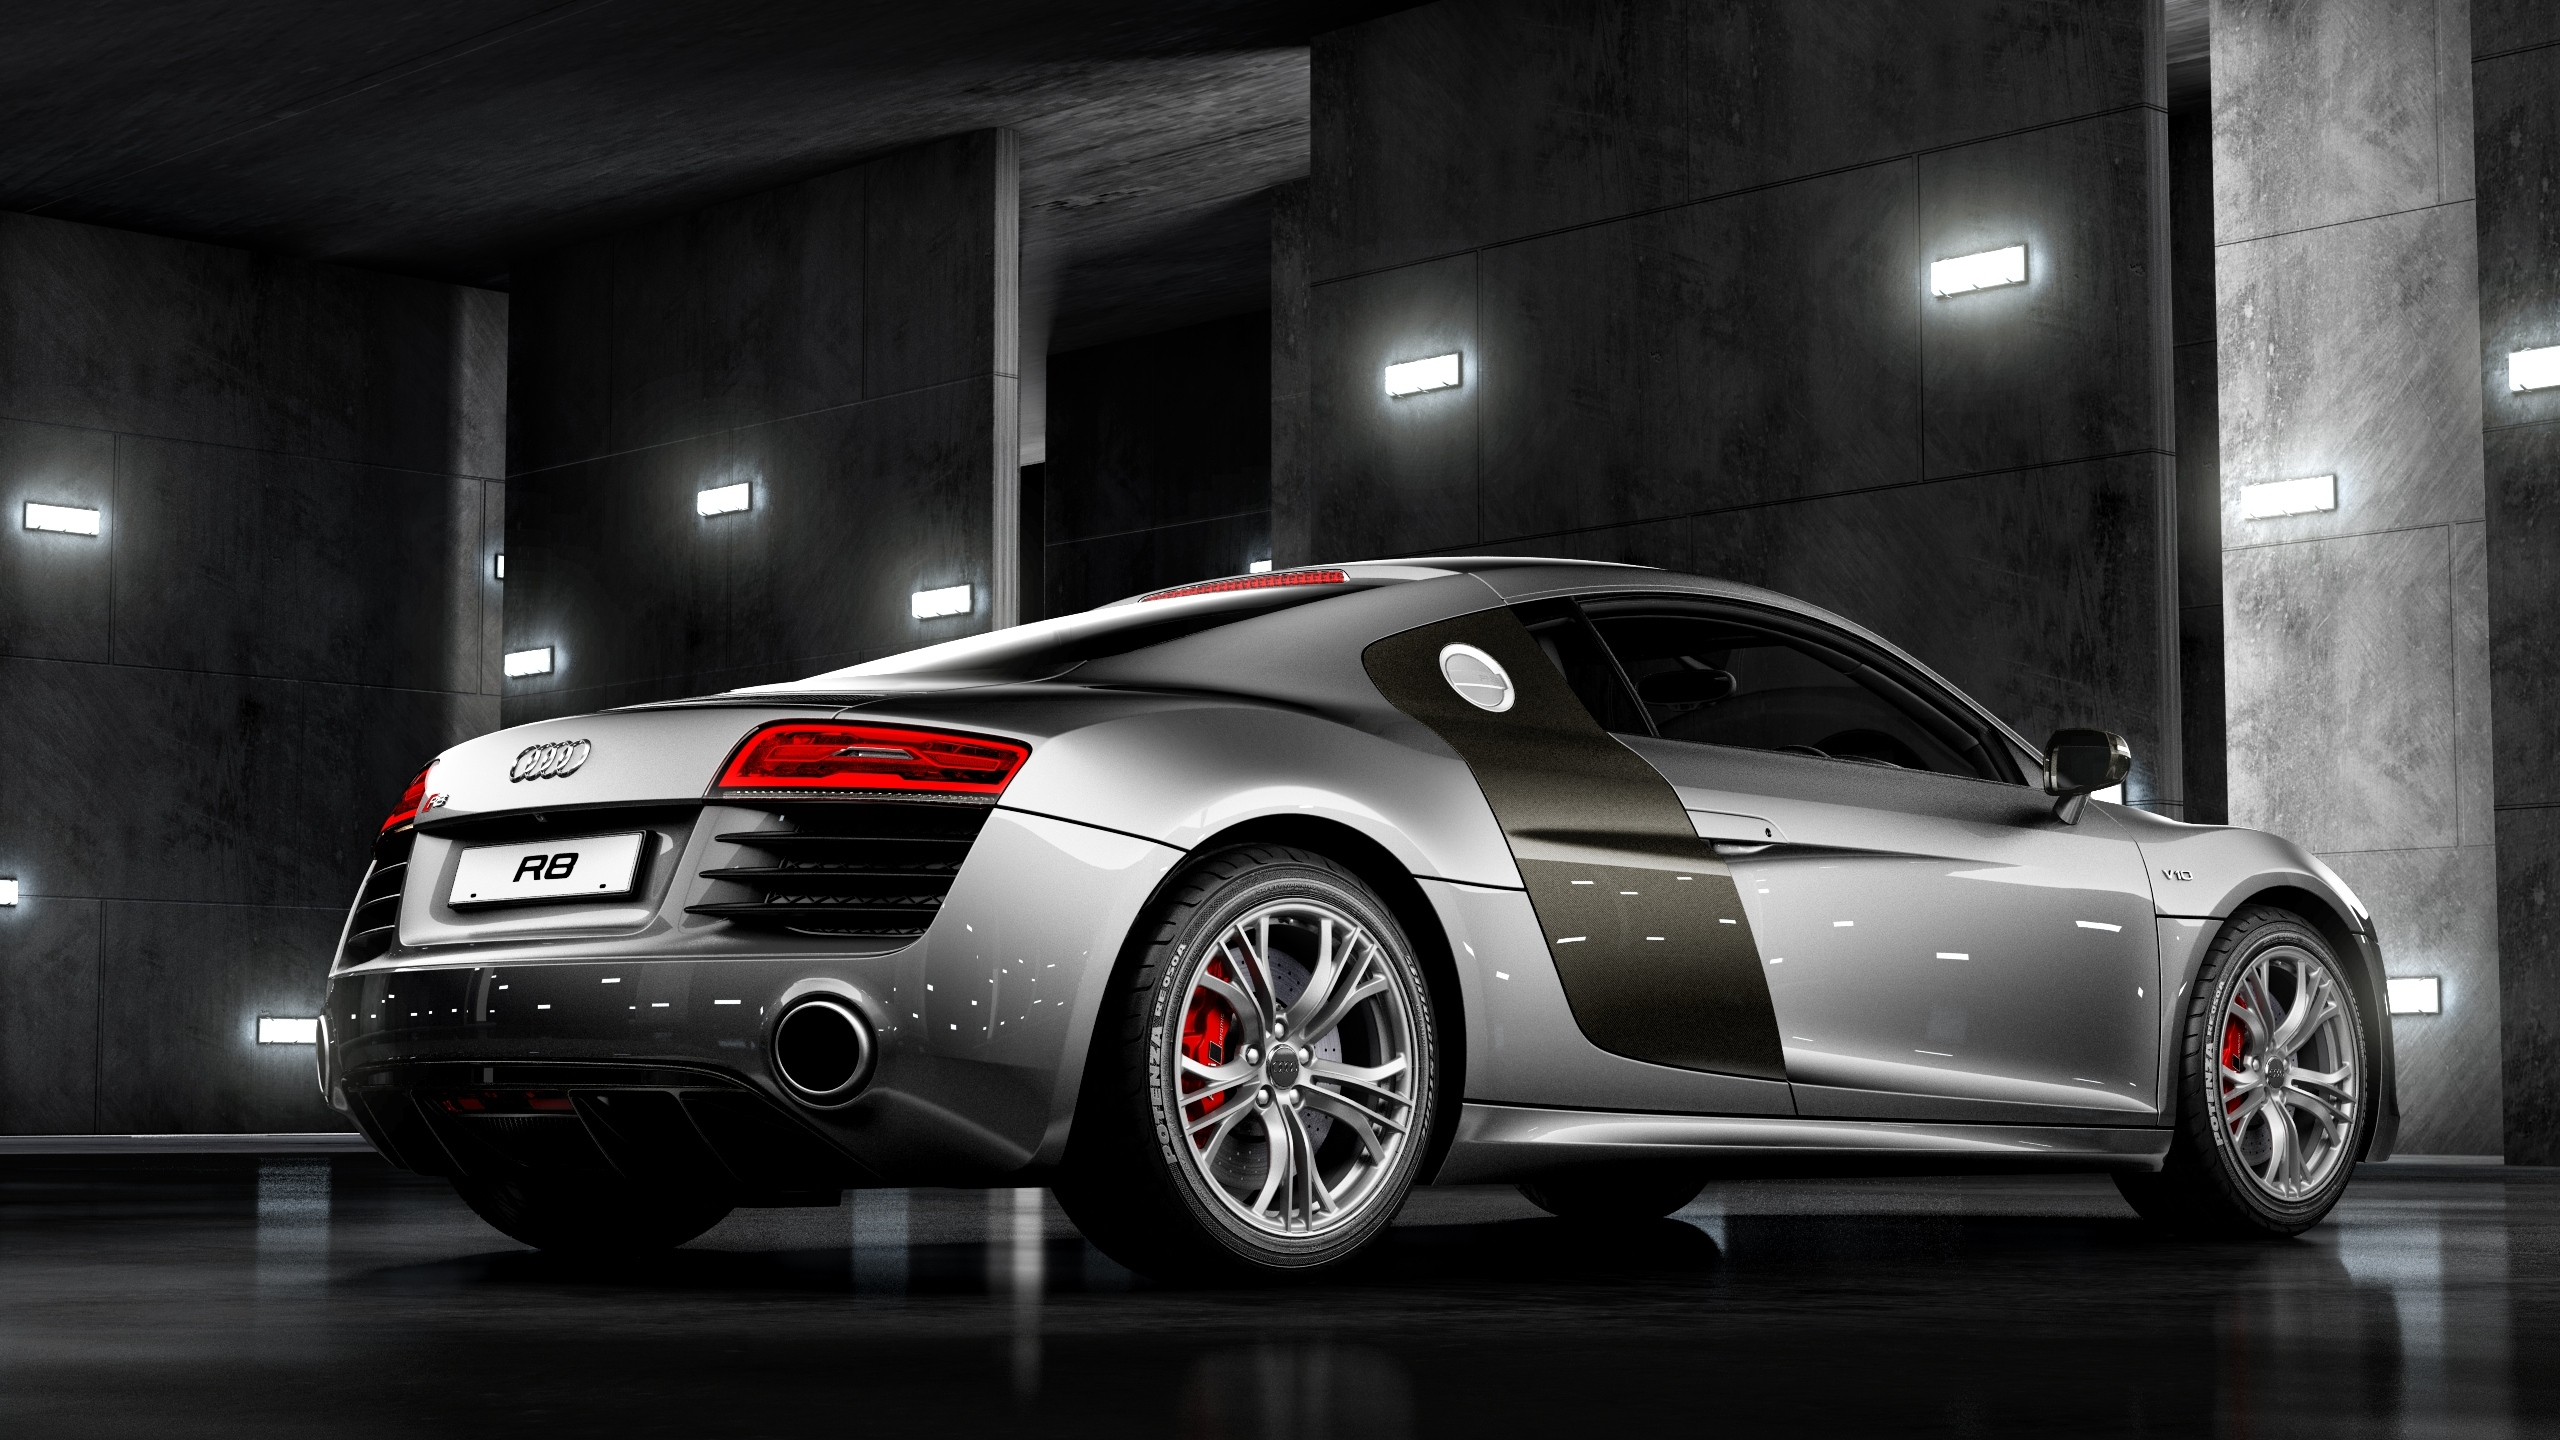 audi r8 2015 coupe smcars net car blueprints forum. Black Bedroom Furniture Sets. Home Design Ideas